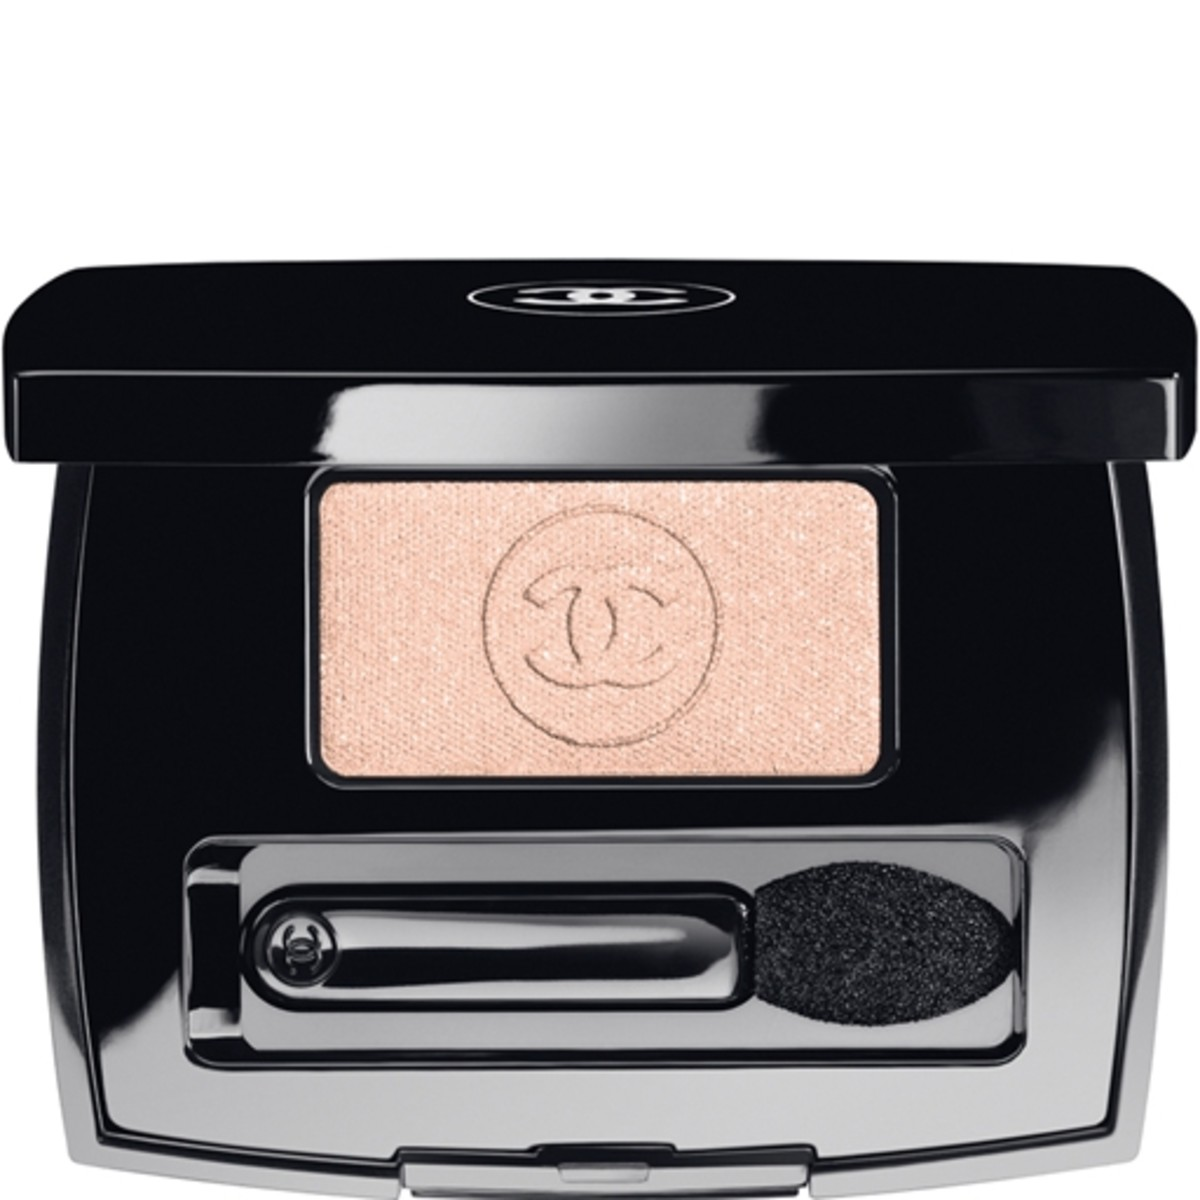 Chanel Ombre Essentielle Soft Touch Eyeshadow in 46 Lotus